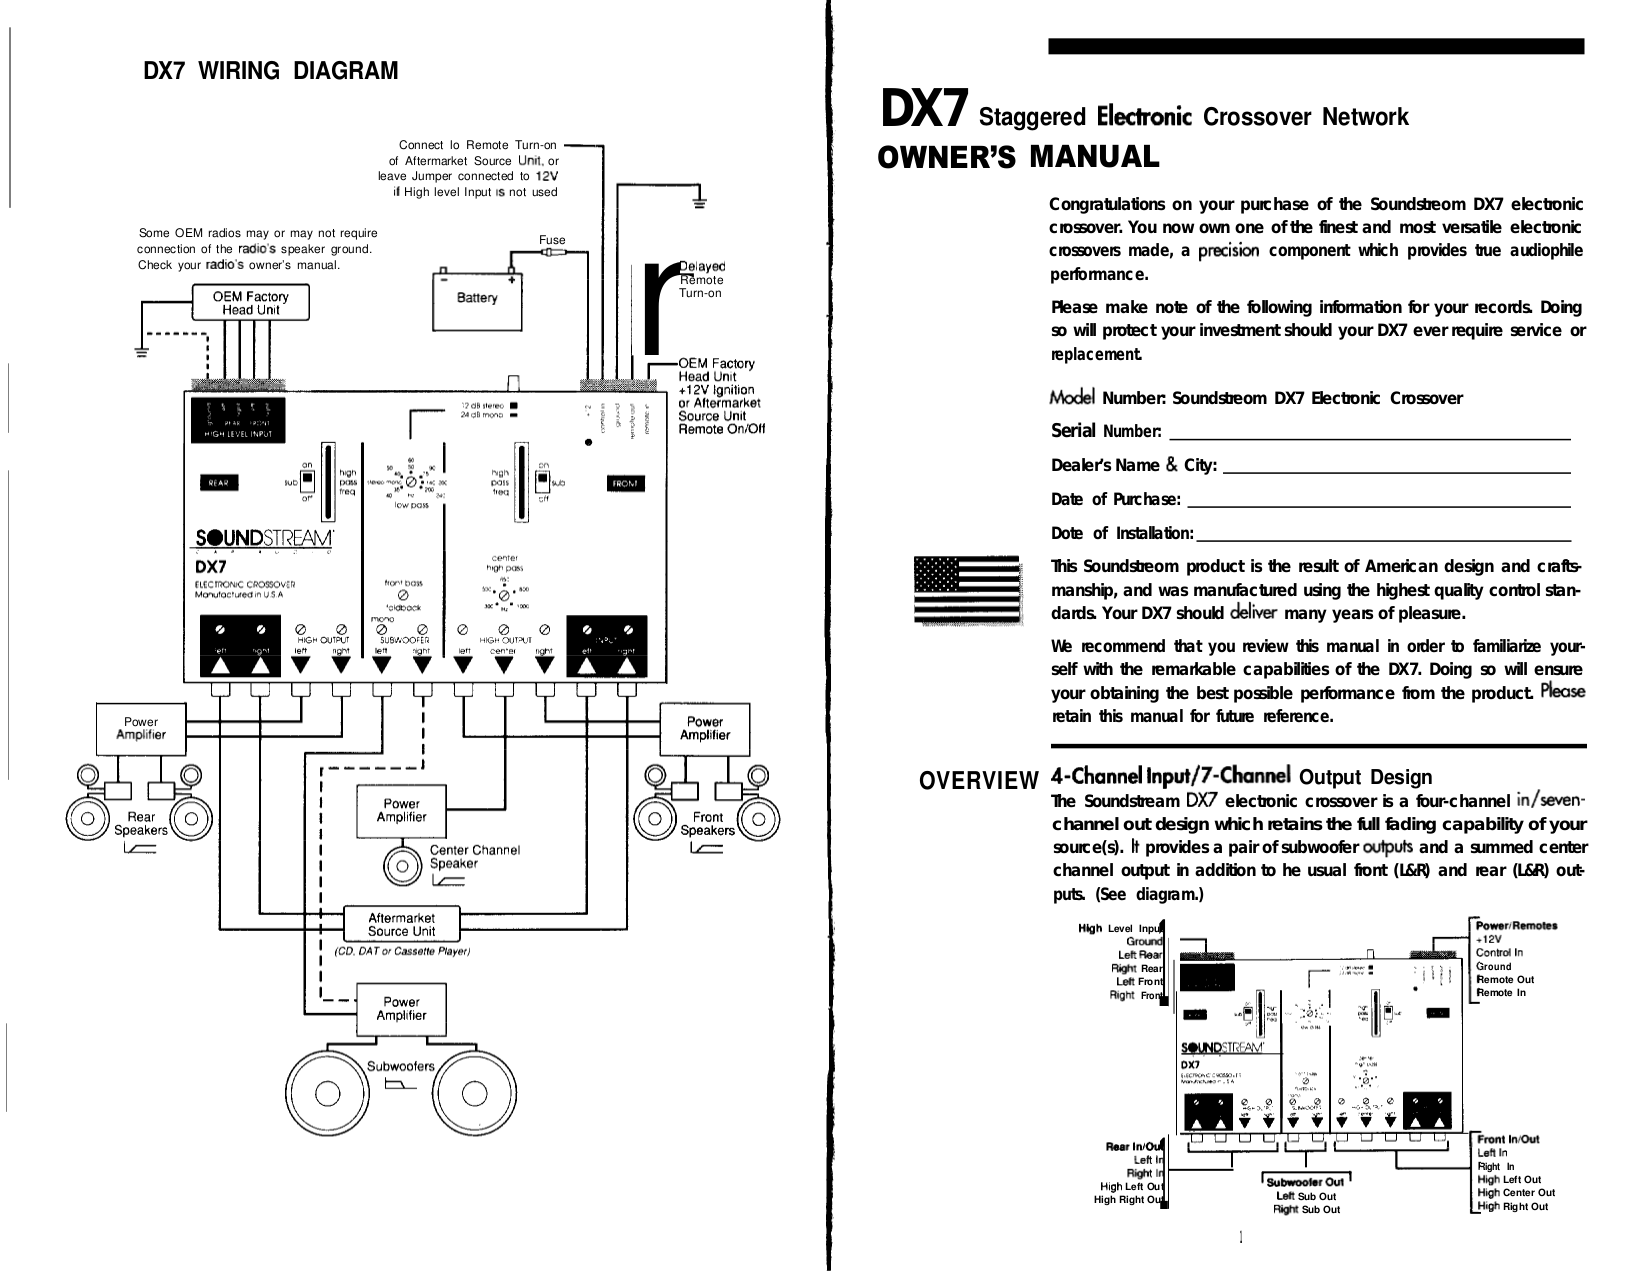 Yamaha 03d Service Manual Auto Electrical Wiring Diagram Nissan B15 Dx7s Pdf Diagrams